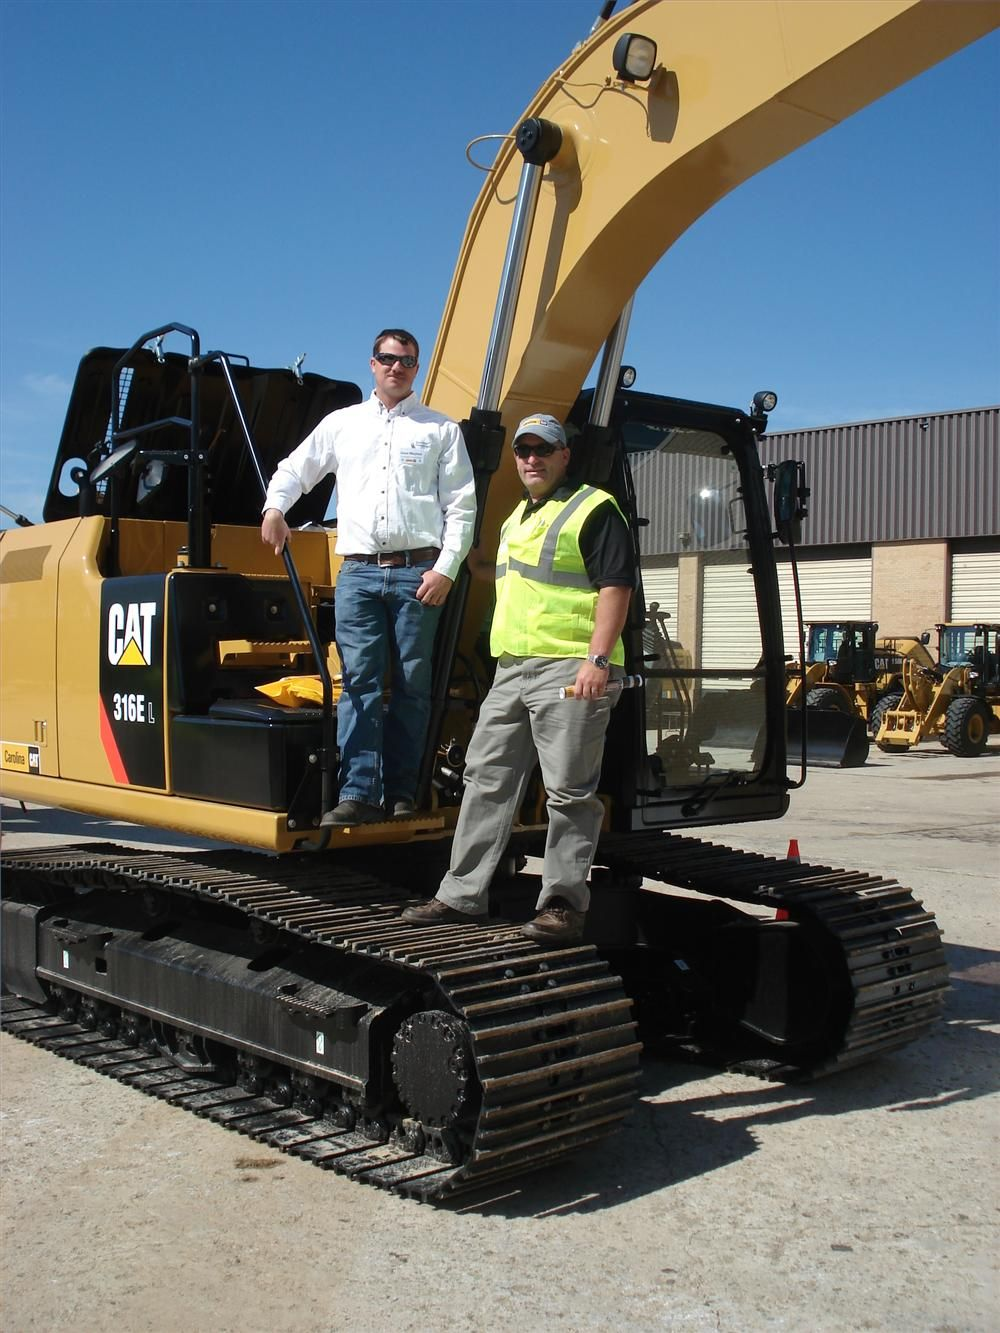 Jason Mayhew (L) of Southland Excavating in Statesville, N.C., looks over the Cat 316E excavator with Brian Hoffman of Carolina CAT.